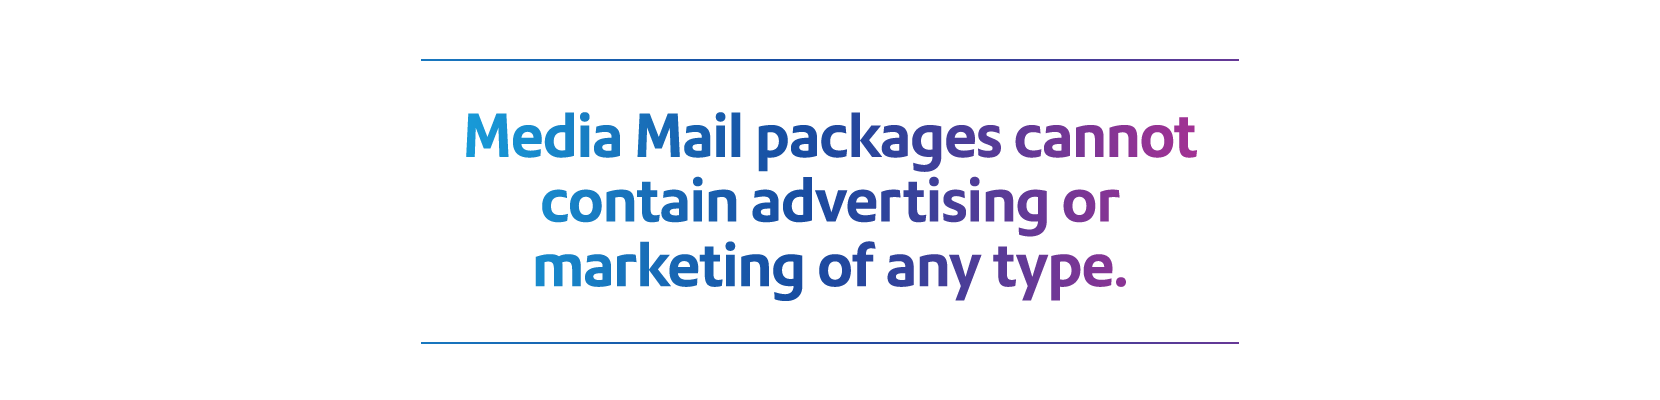 media mail packages cannot contain advertising or marketing of any type.